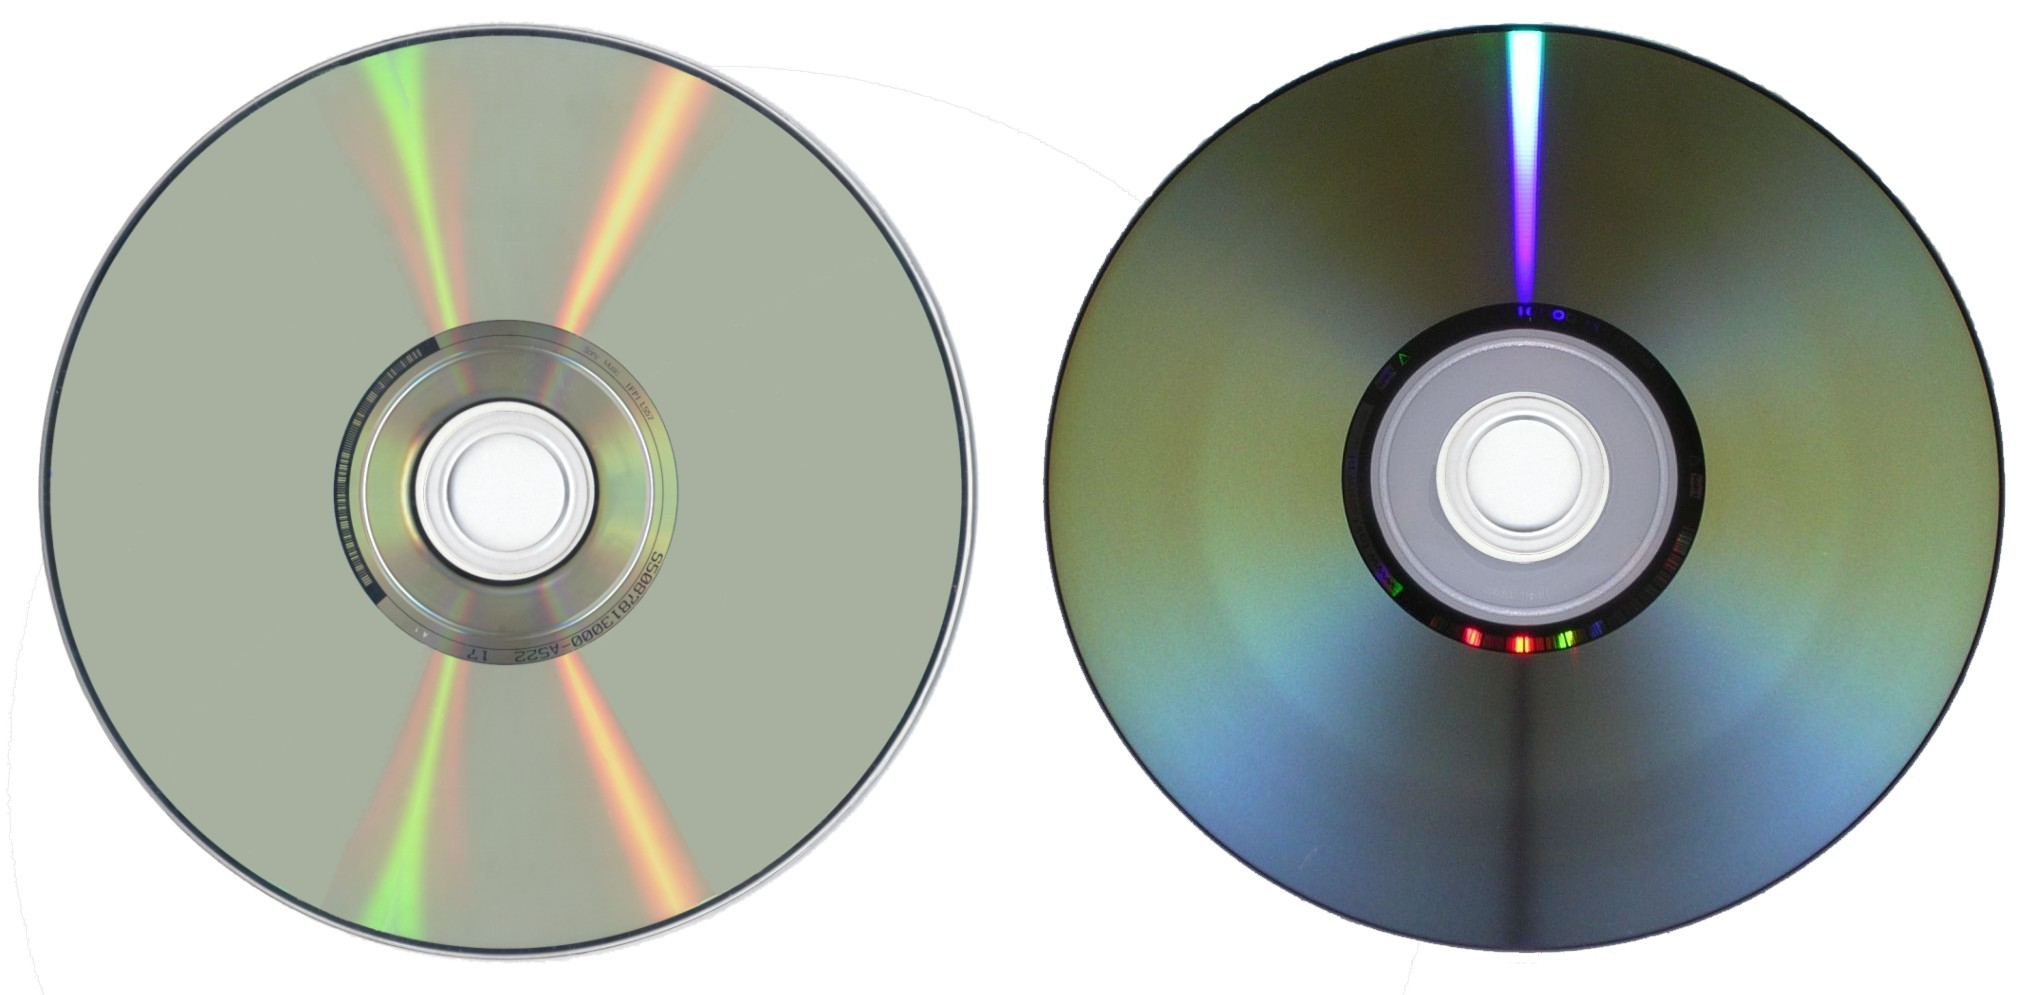 File:DVD two kinds.jpg